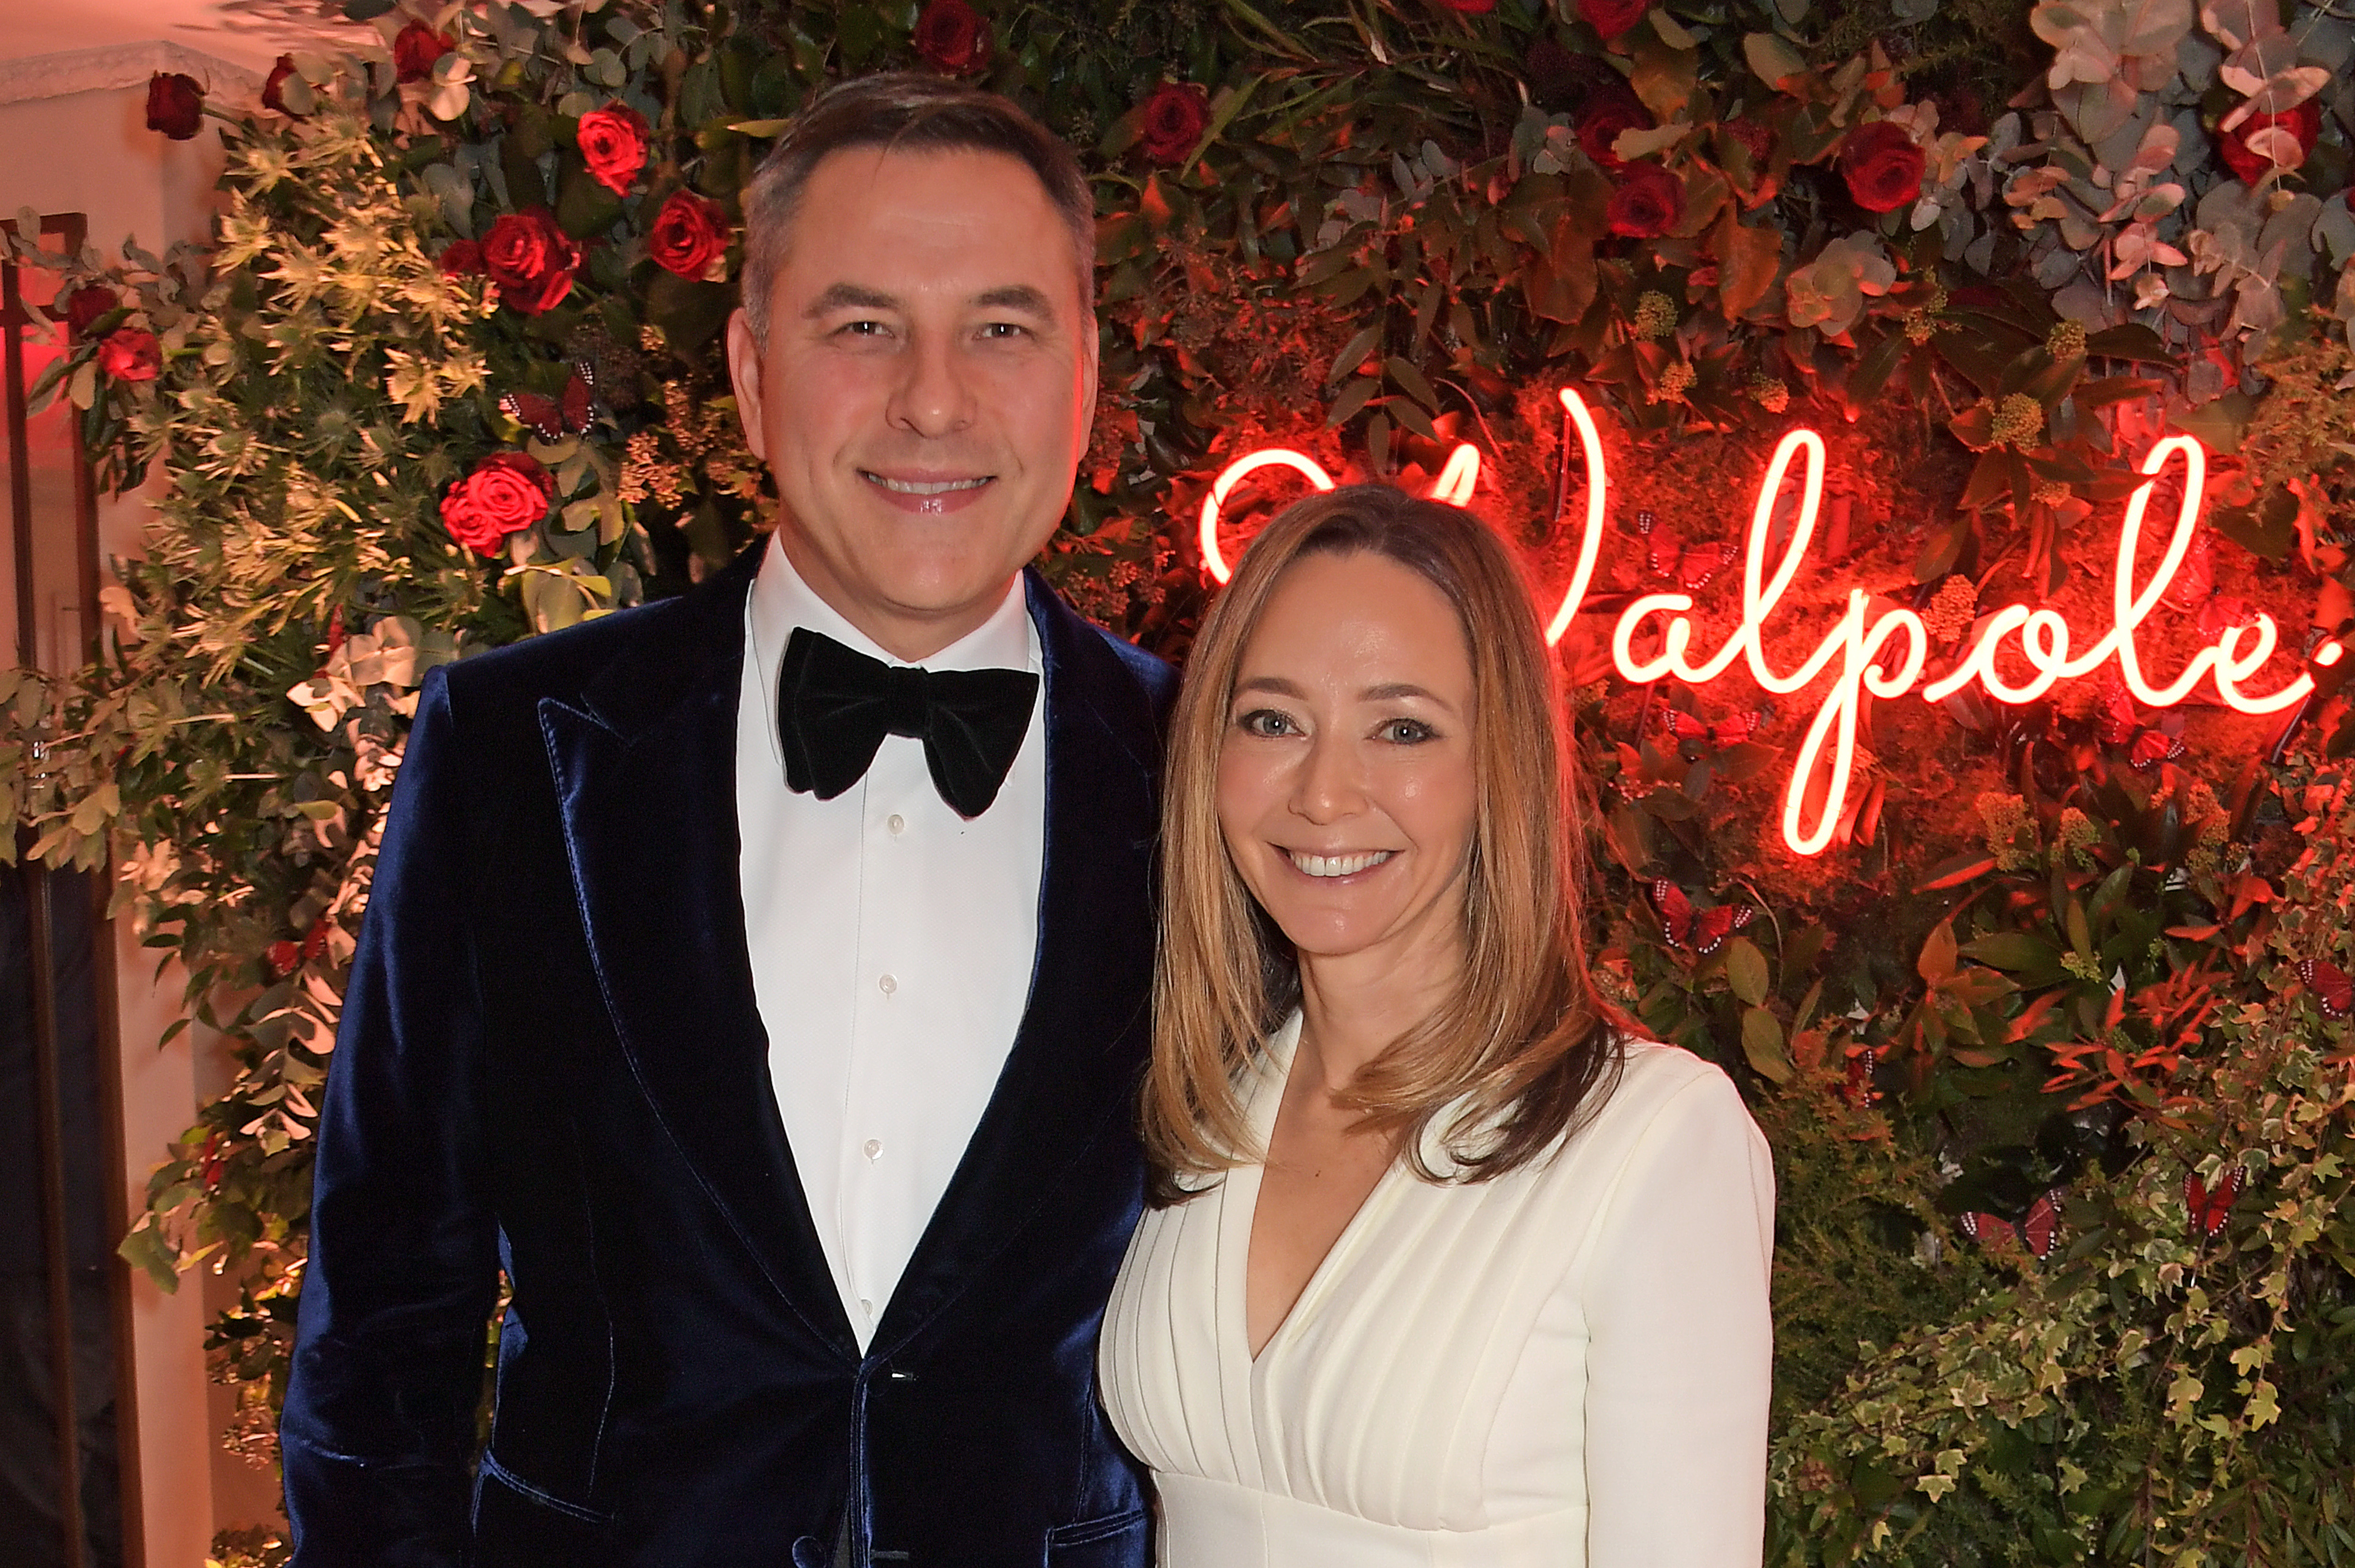 LONDON, ENGLAND - NOVEMBER 18: David Walliams and Whitney Bromberg Hawkings attend the Walpole British Luxury Awards 2019 at The Dorchester on November 18, 2019 in London, England. Pic Credit: Dave Benett